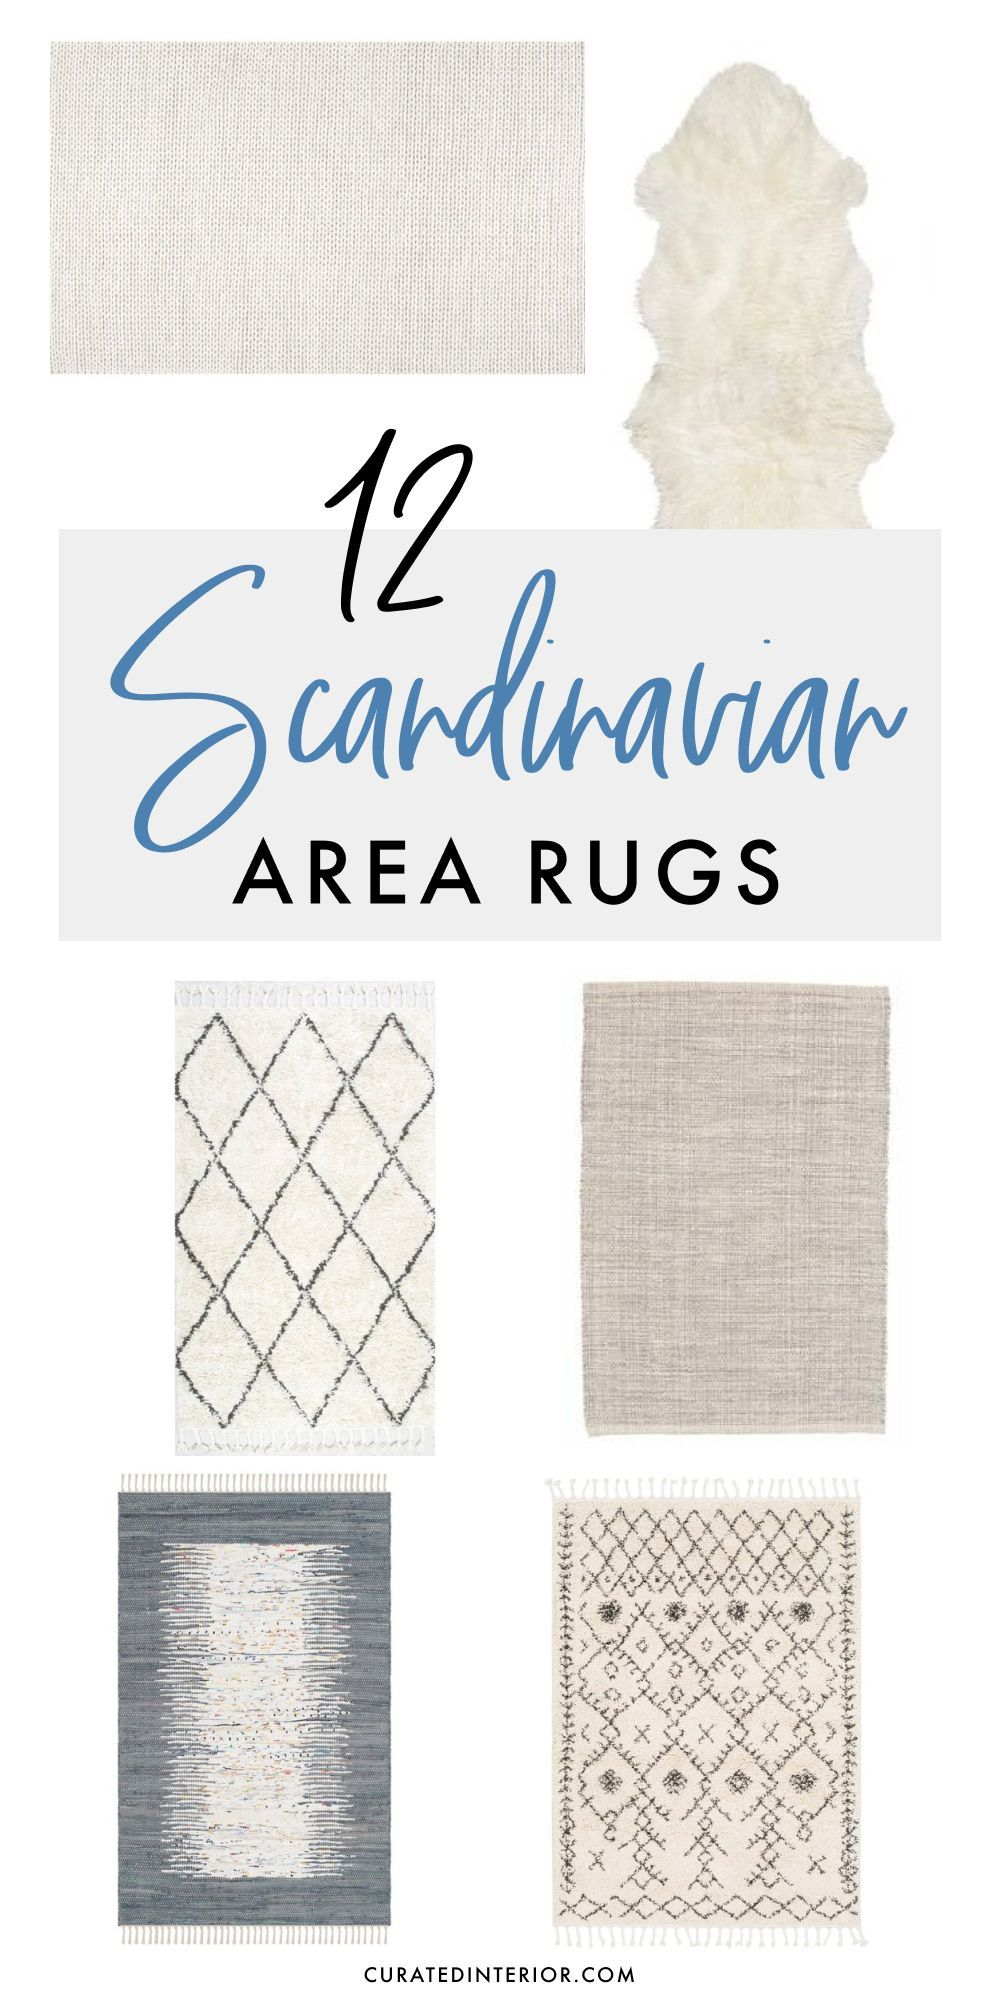 12 Scandinavian Rugs For The Perfect Nordic Look Scandinavian Rug Scandi Rug Scandinavian Area Rugs